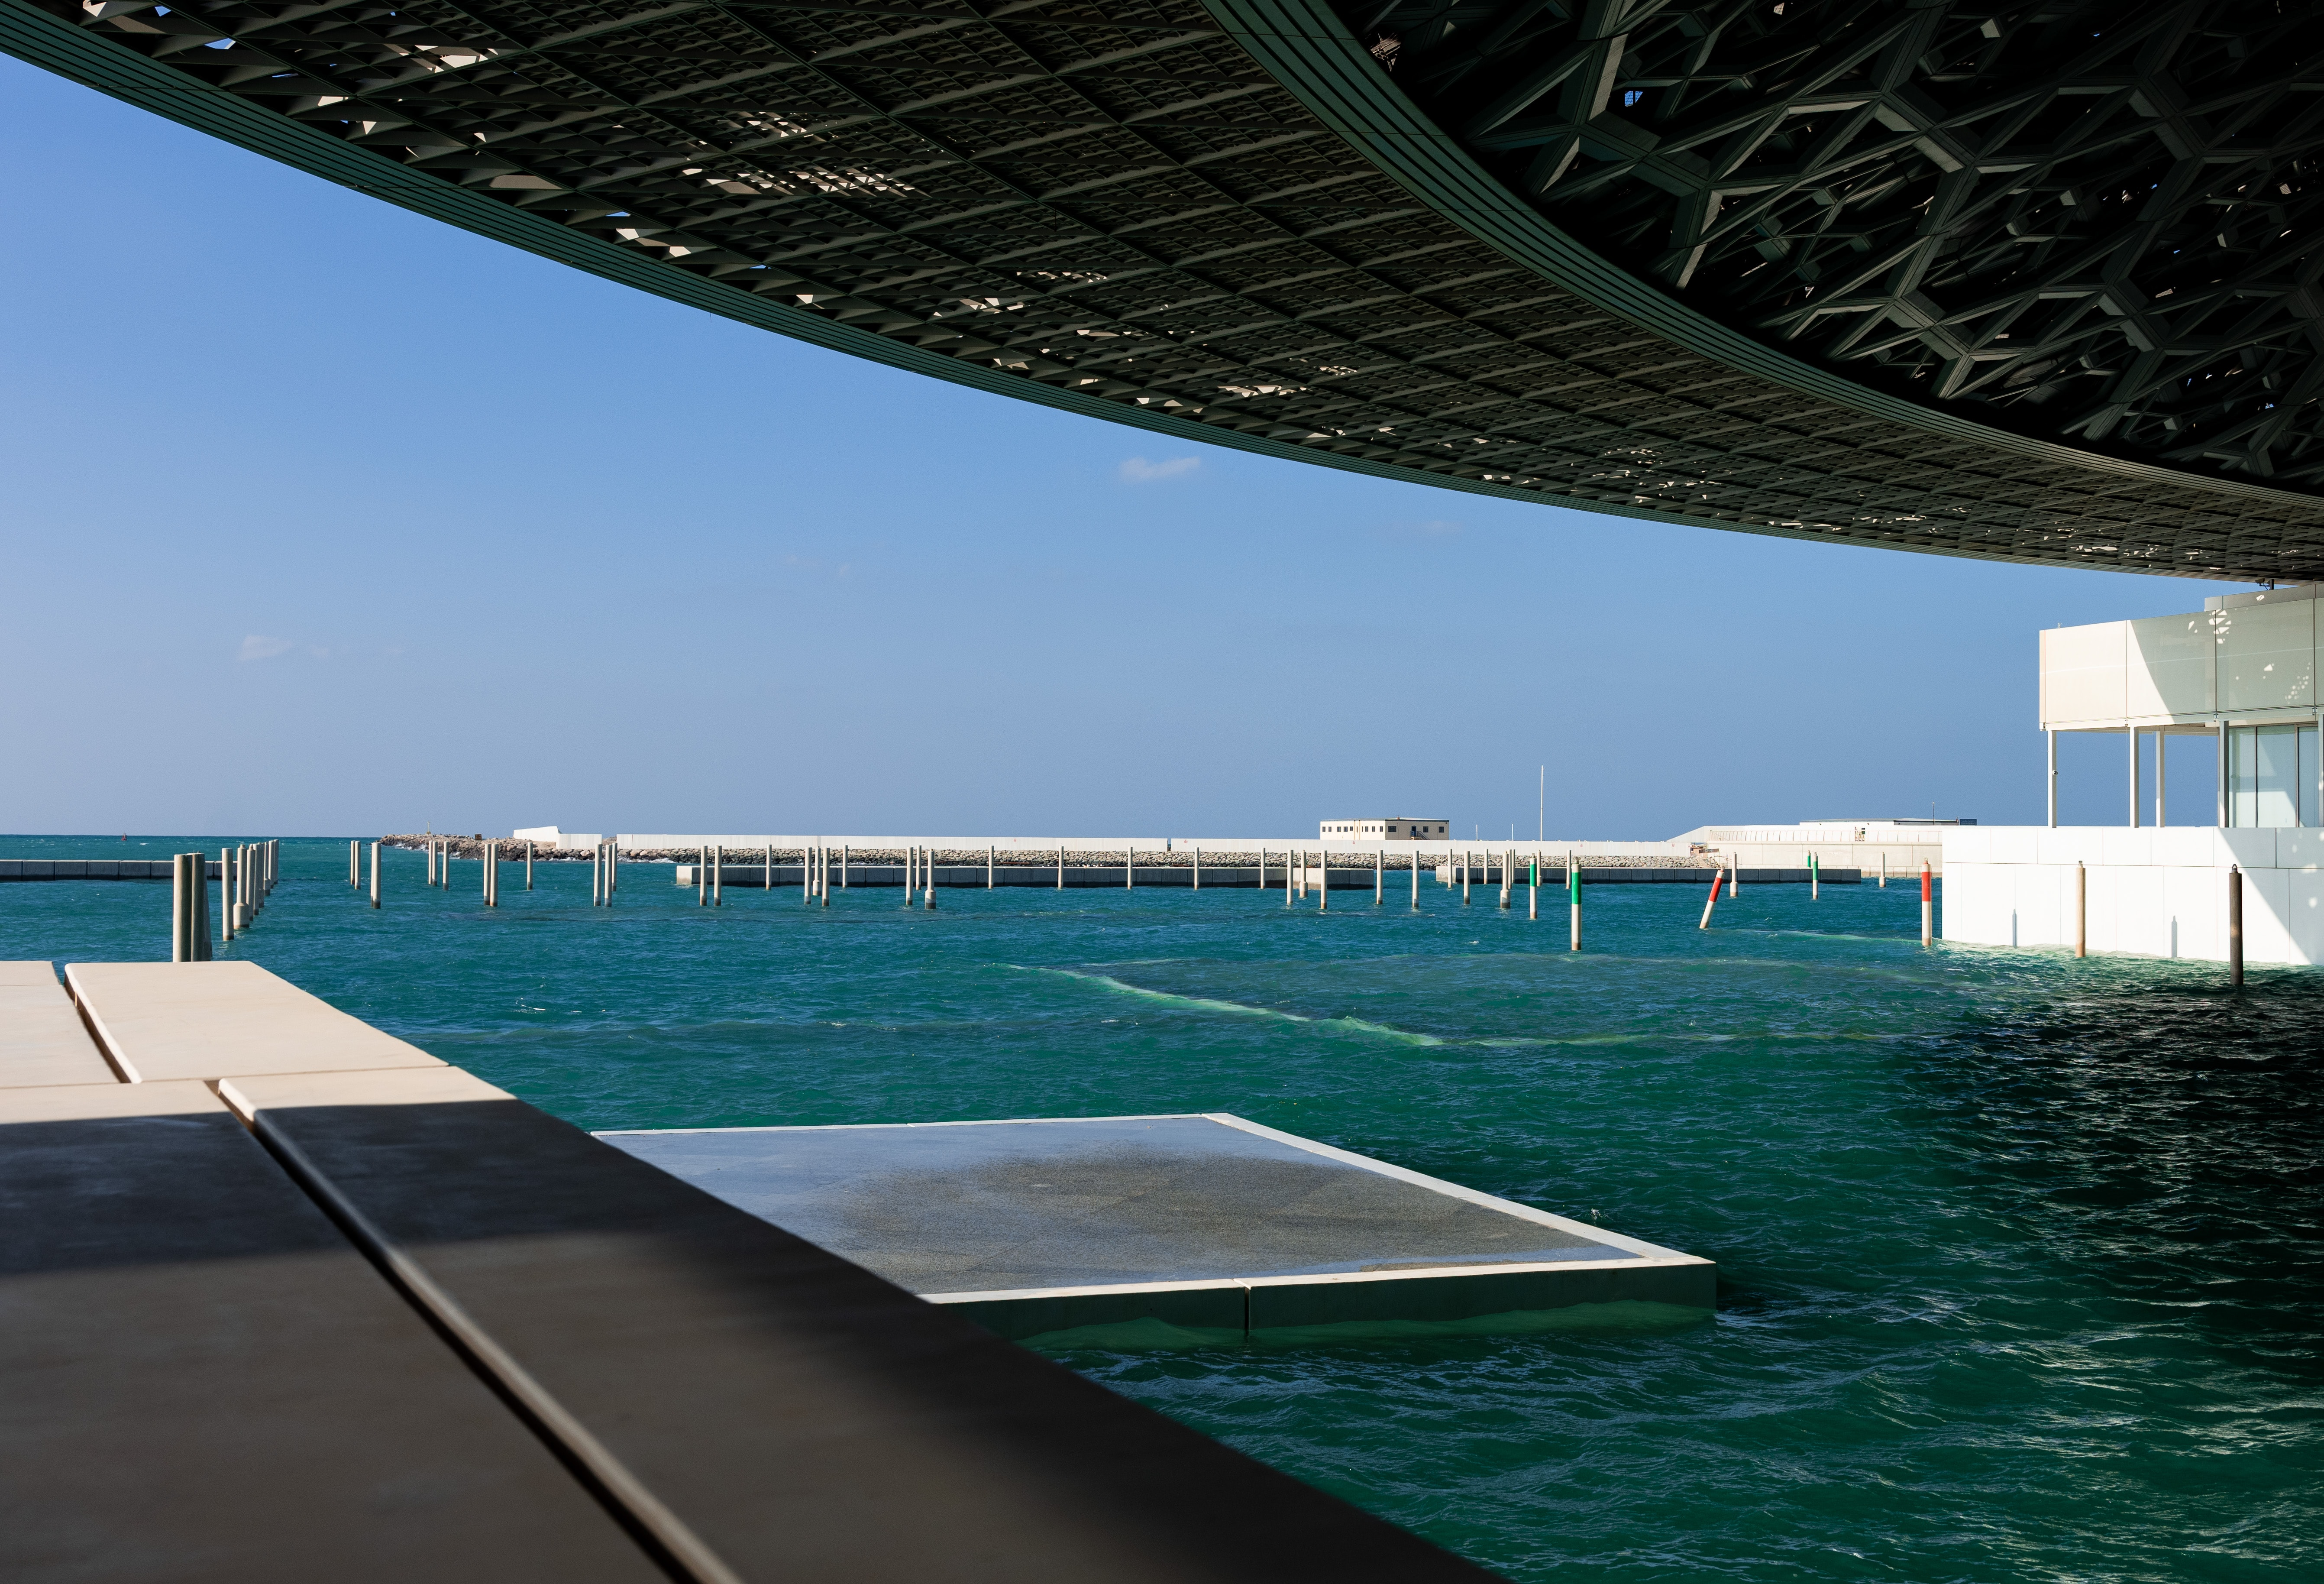 Best Places to Visit in Dubai - Louvre Abu Dhabi - 2